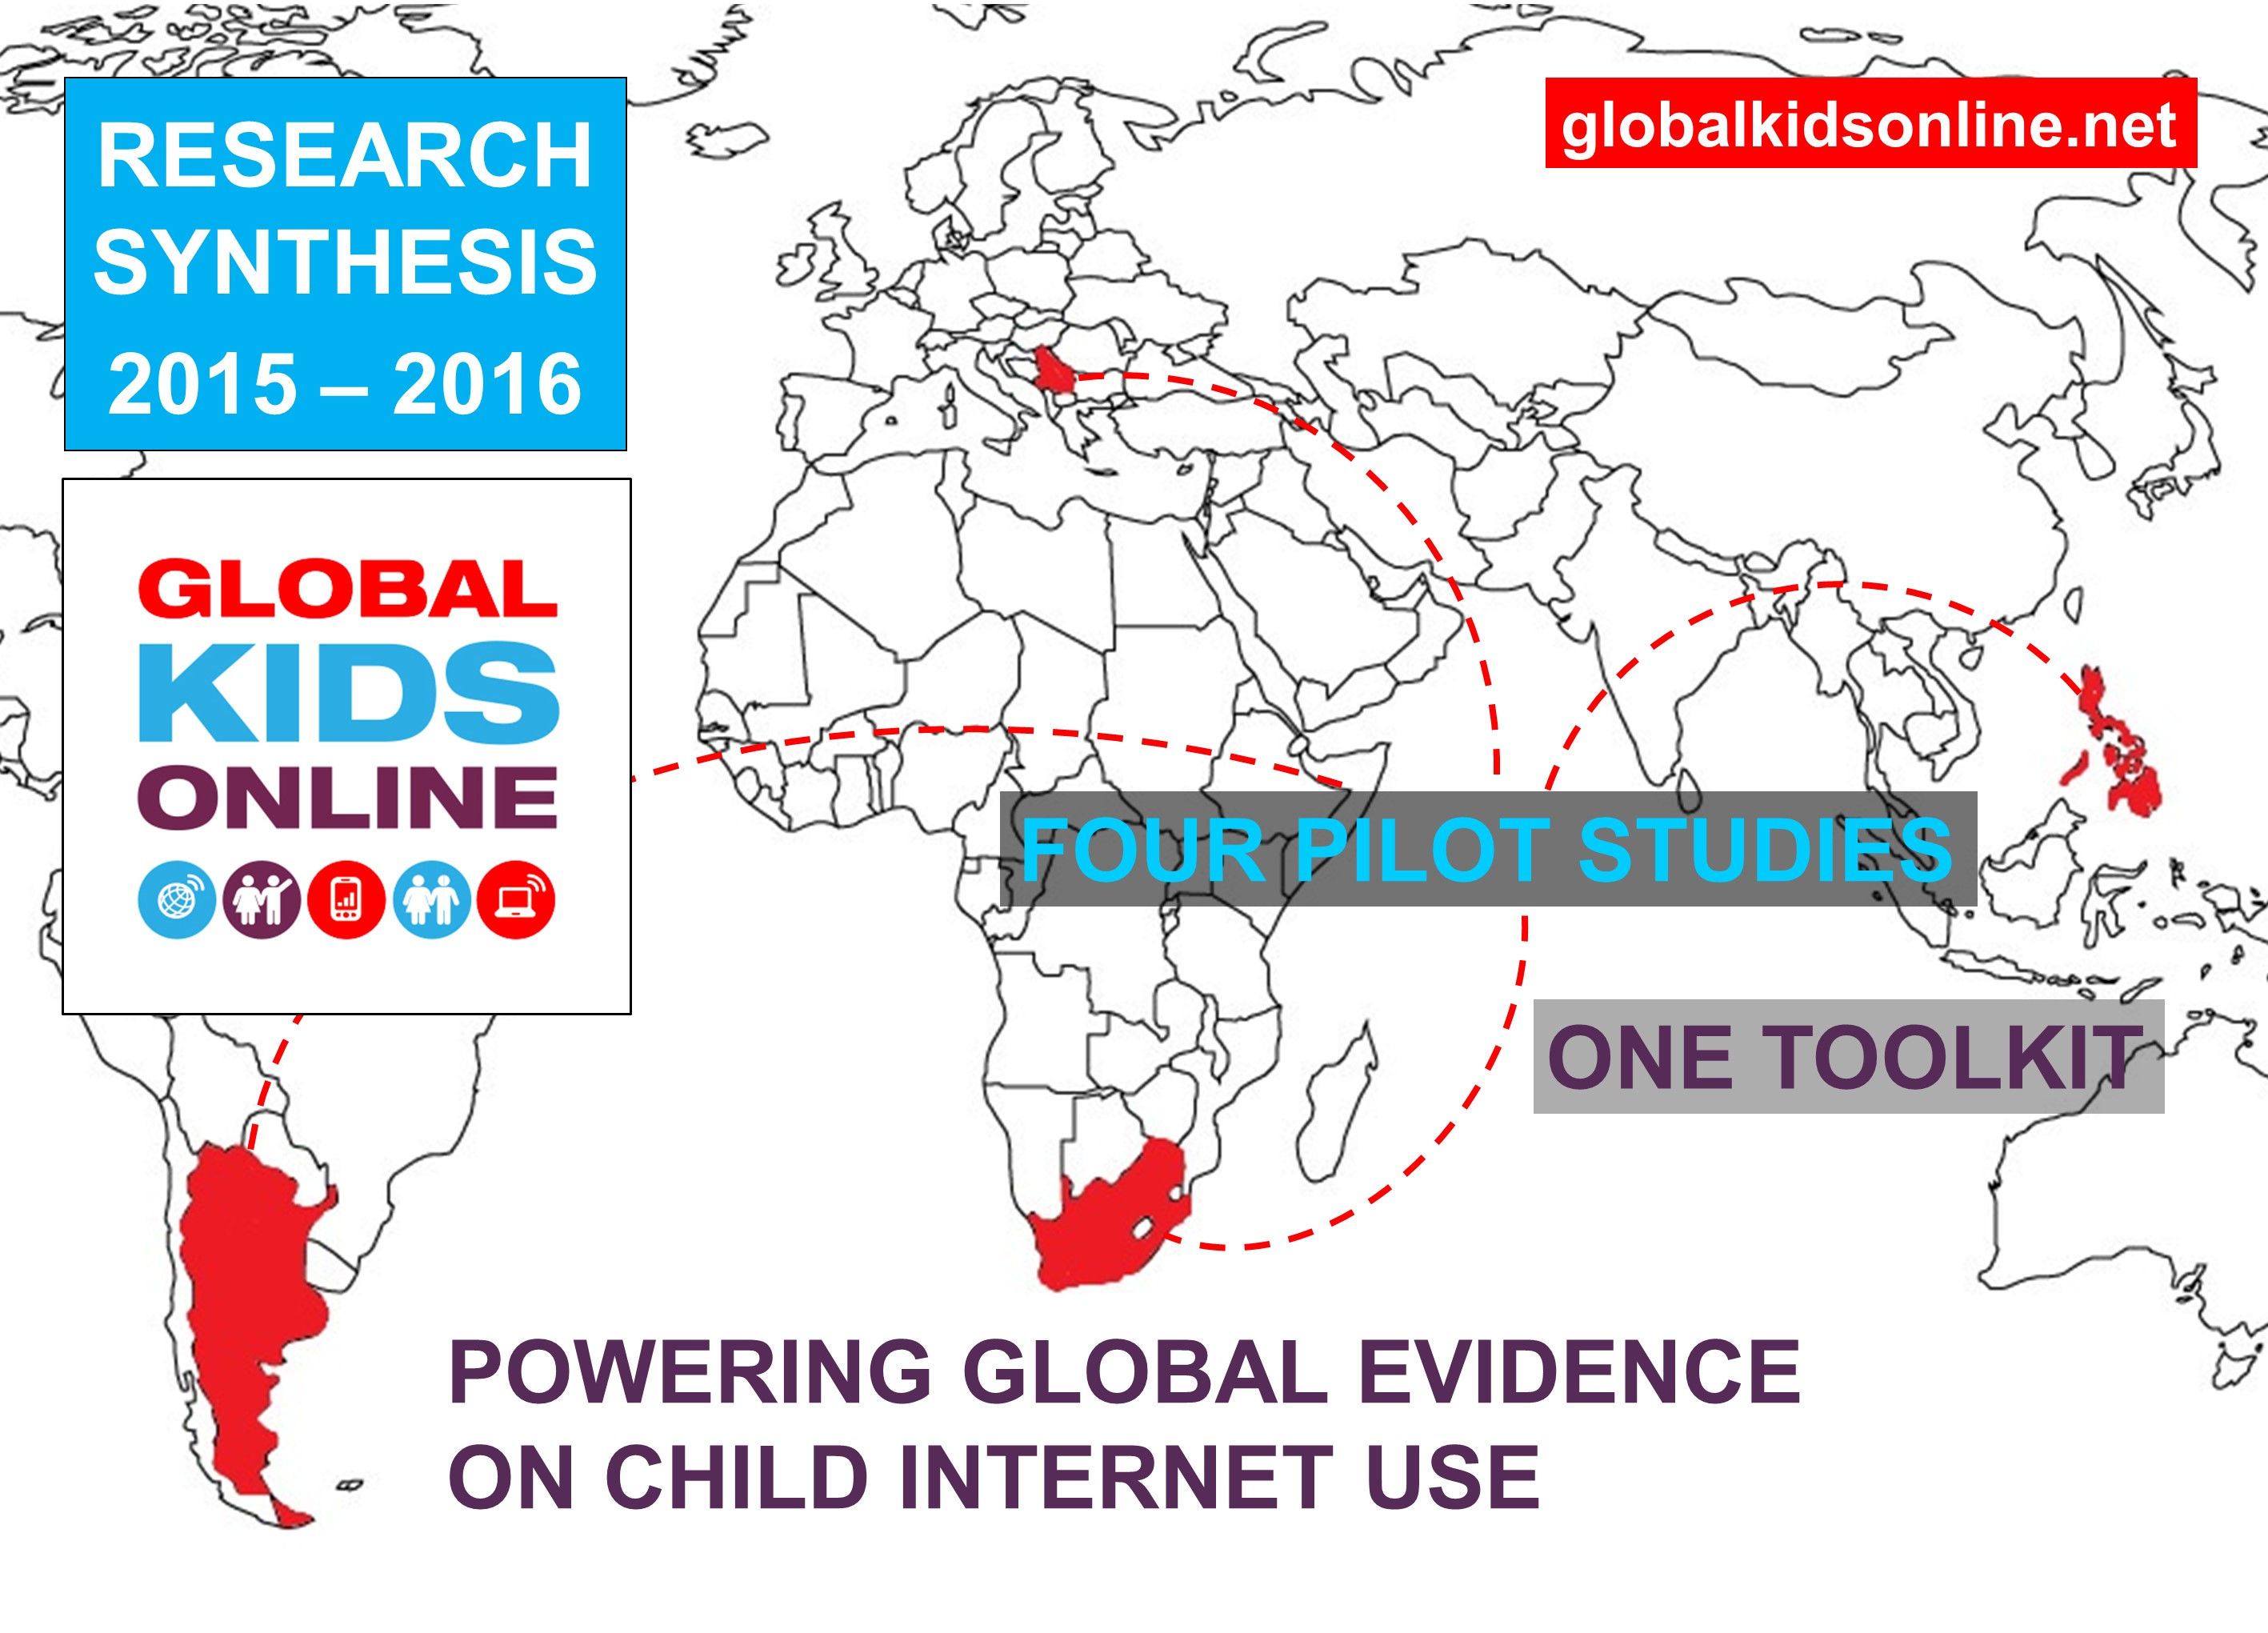 Global Kids Online is a new online research partnership which aims to support high quality research on child internet use all over the world.